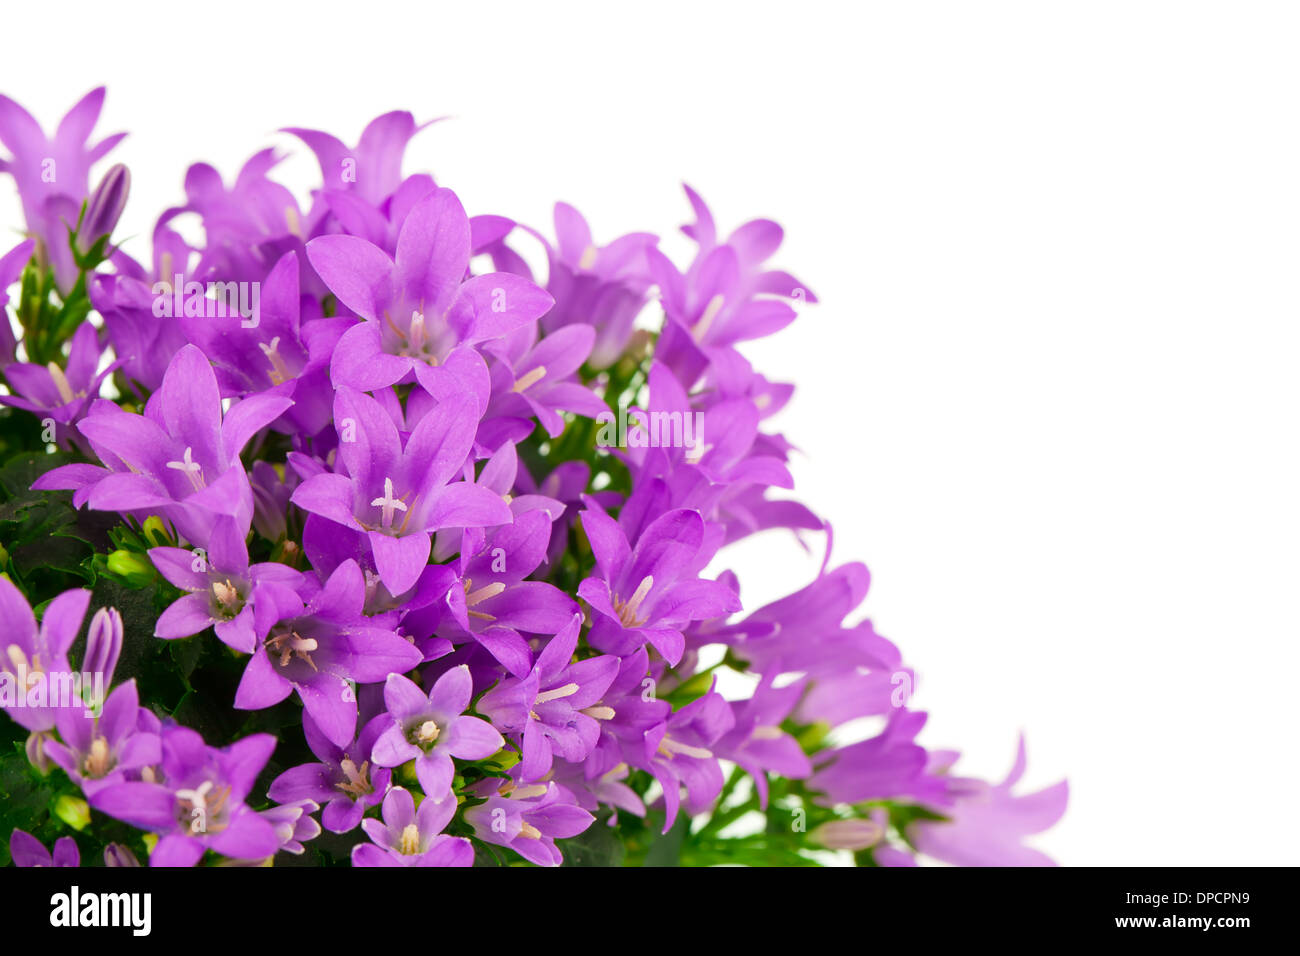 Blue Campanula Flowers On White Background Stock Photo 65434805